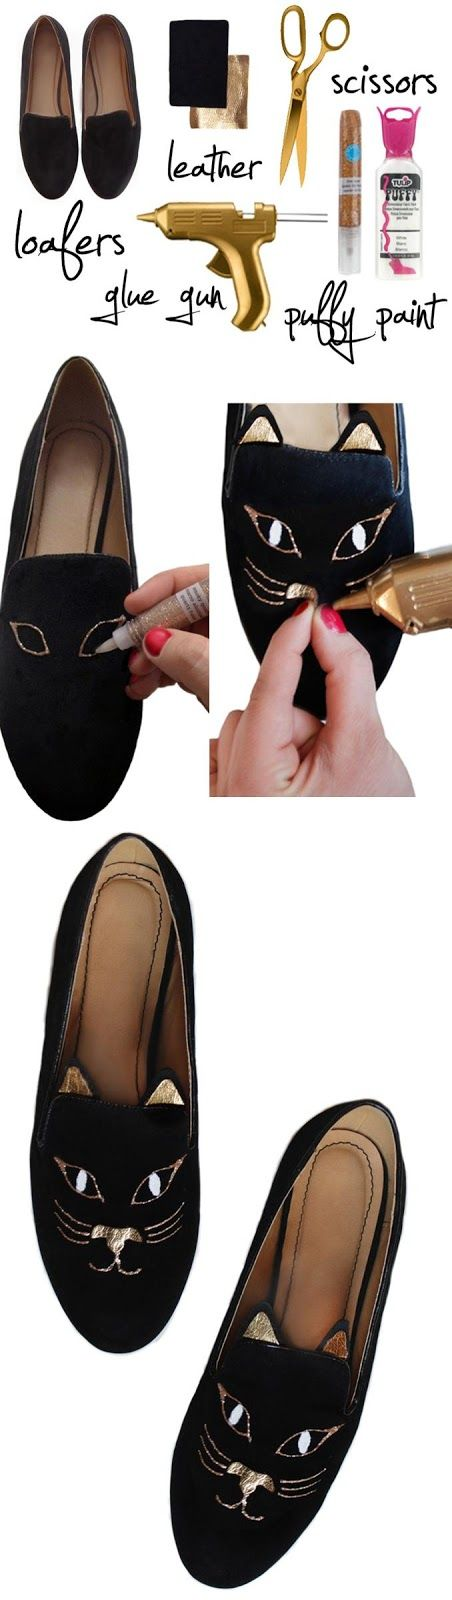 How To Paint Kitty in Your Loafers